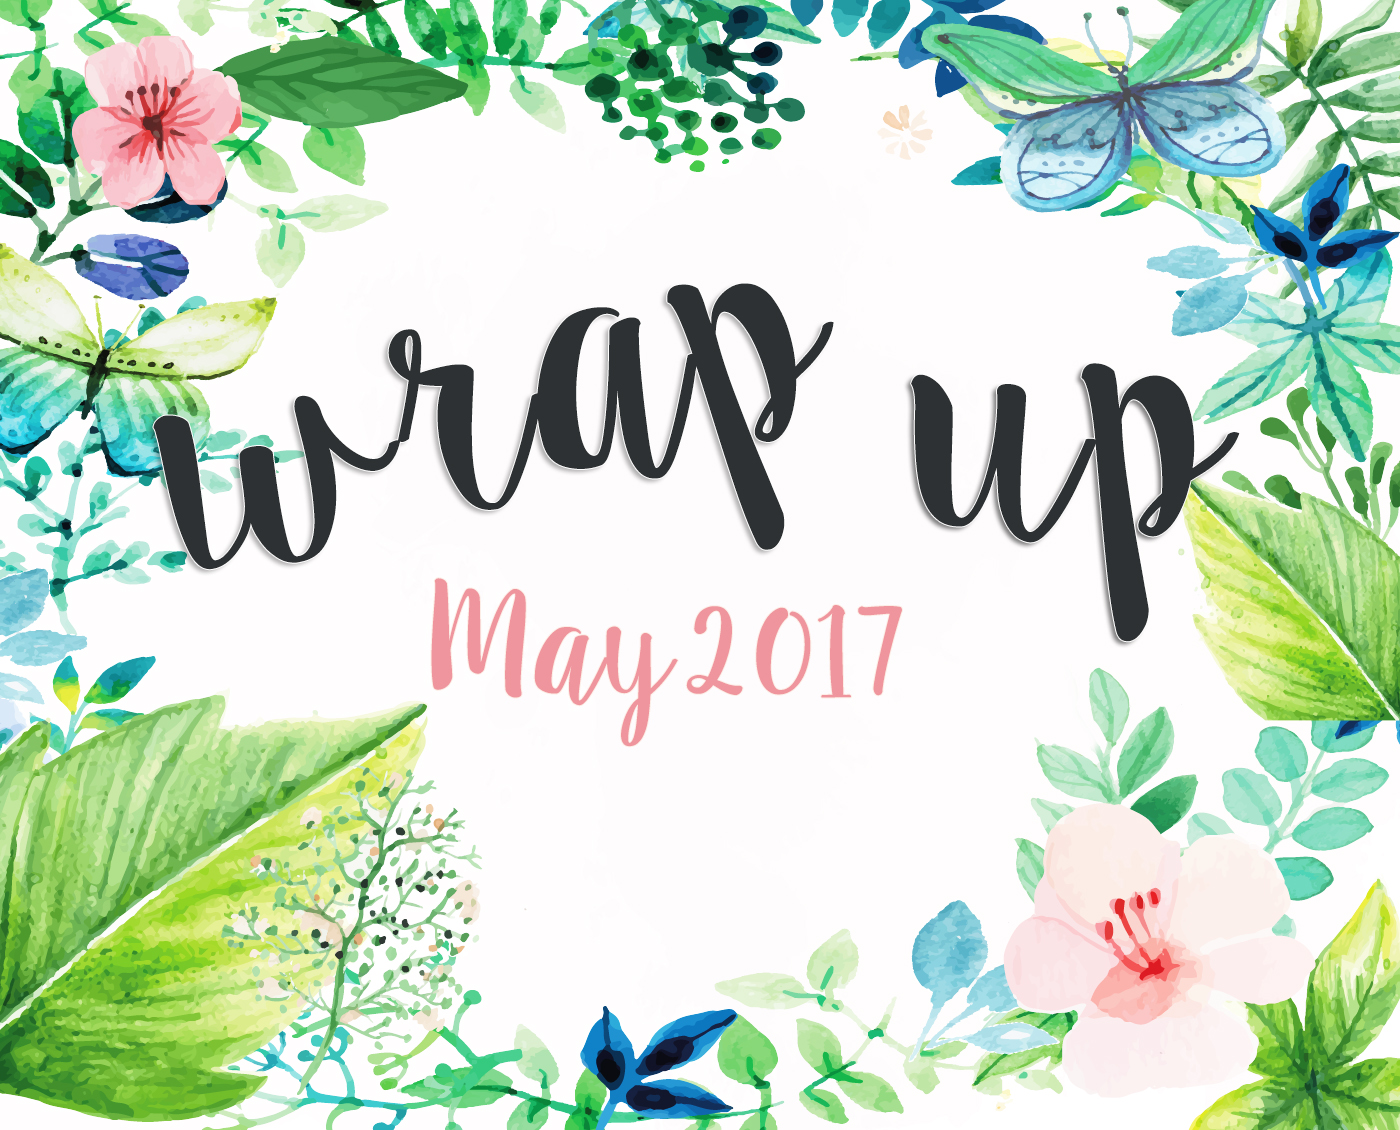 wrap up may 2017